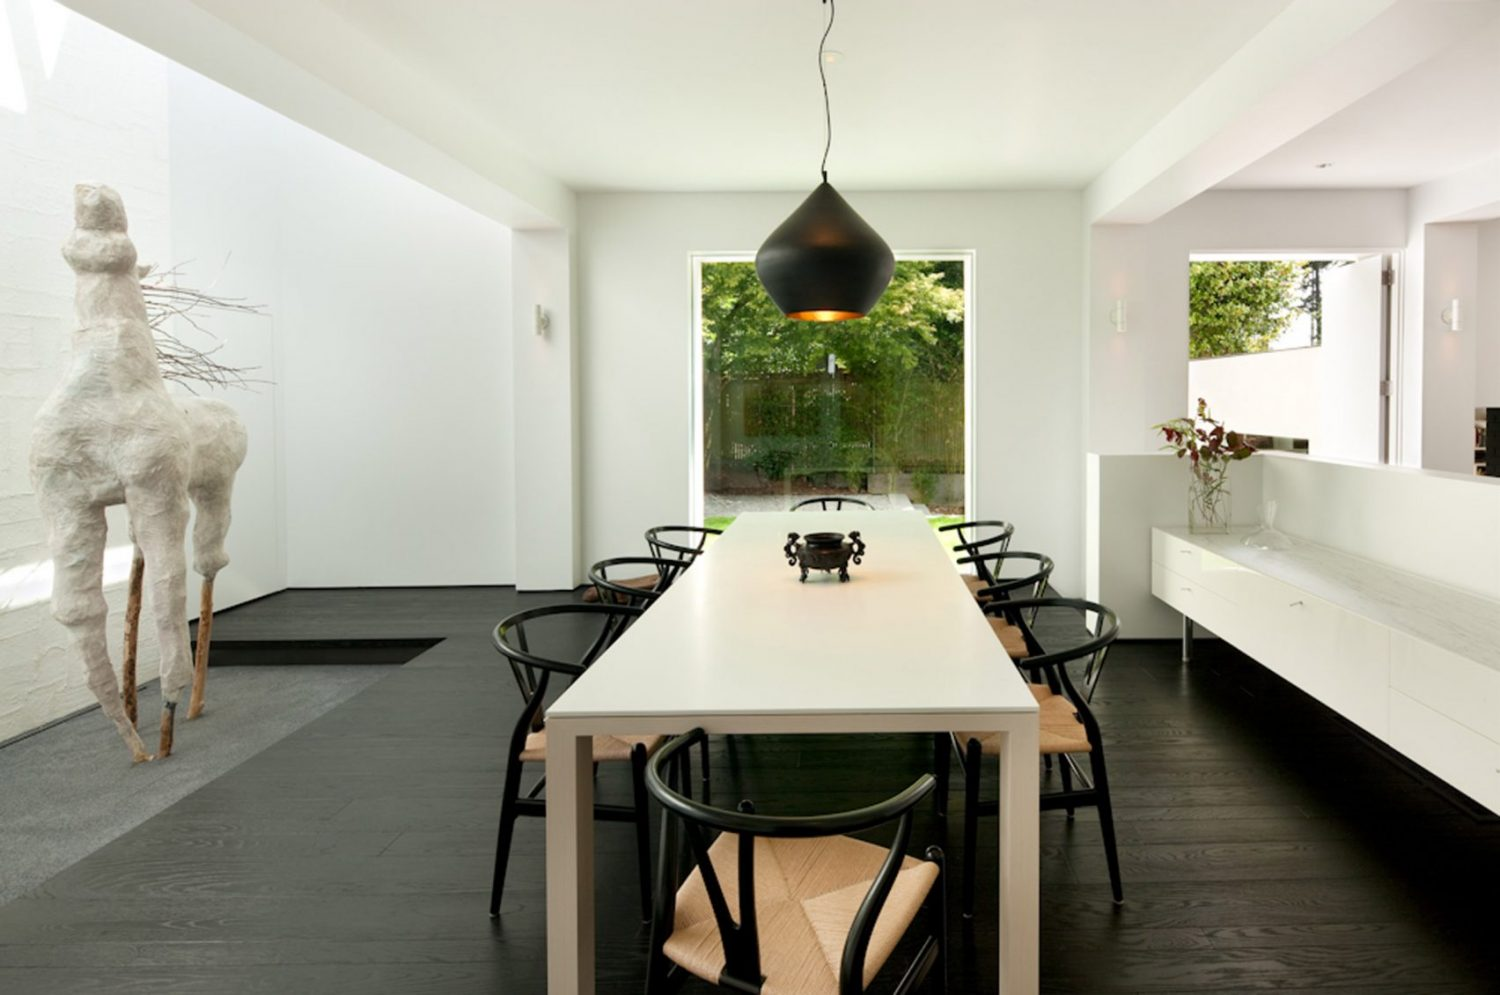 Modern Oasis by SkB Architects Features Gallery-Like Aesthetic Modern Oasis by SkB Architects Modern Oasis by SkB Architects Features Gallery-Like Aesthetic Modern Oasis by SkB Architects Features Gallery Like Aesthetic 2